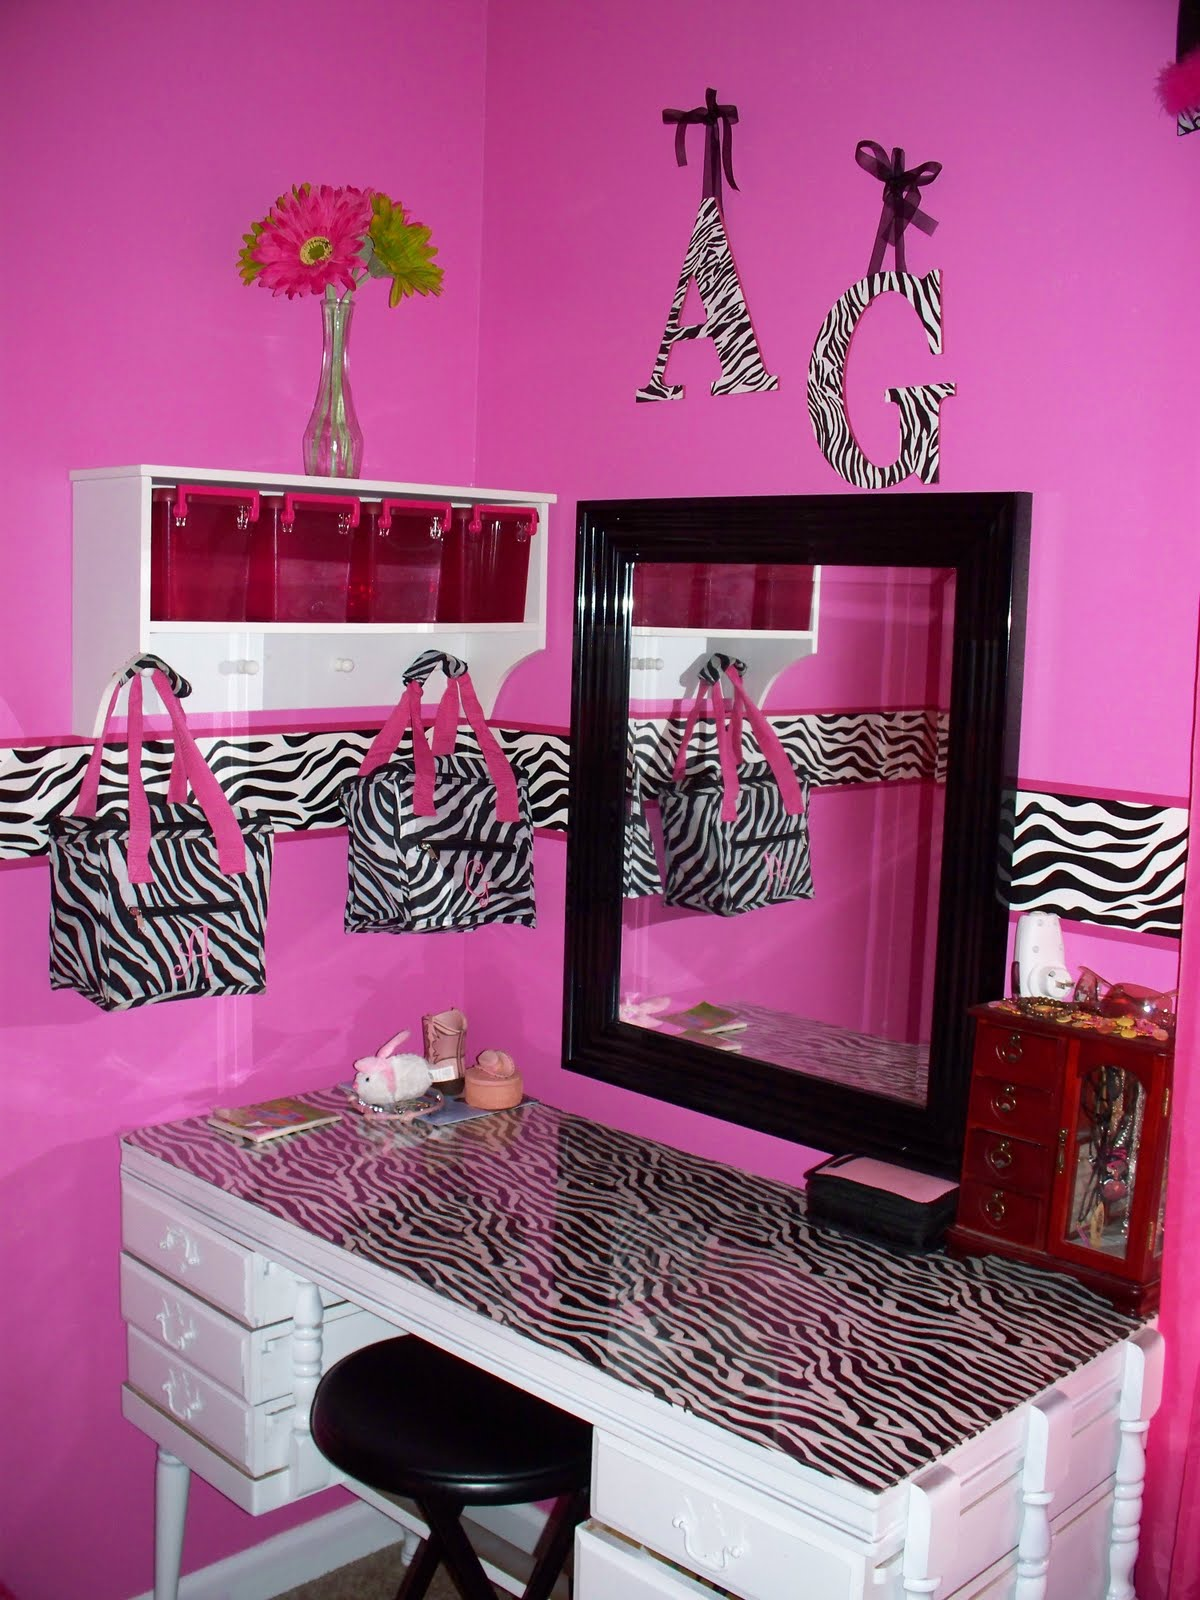 Mommy lou who hot pink zebra room - Hot pink room ideas ...